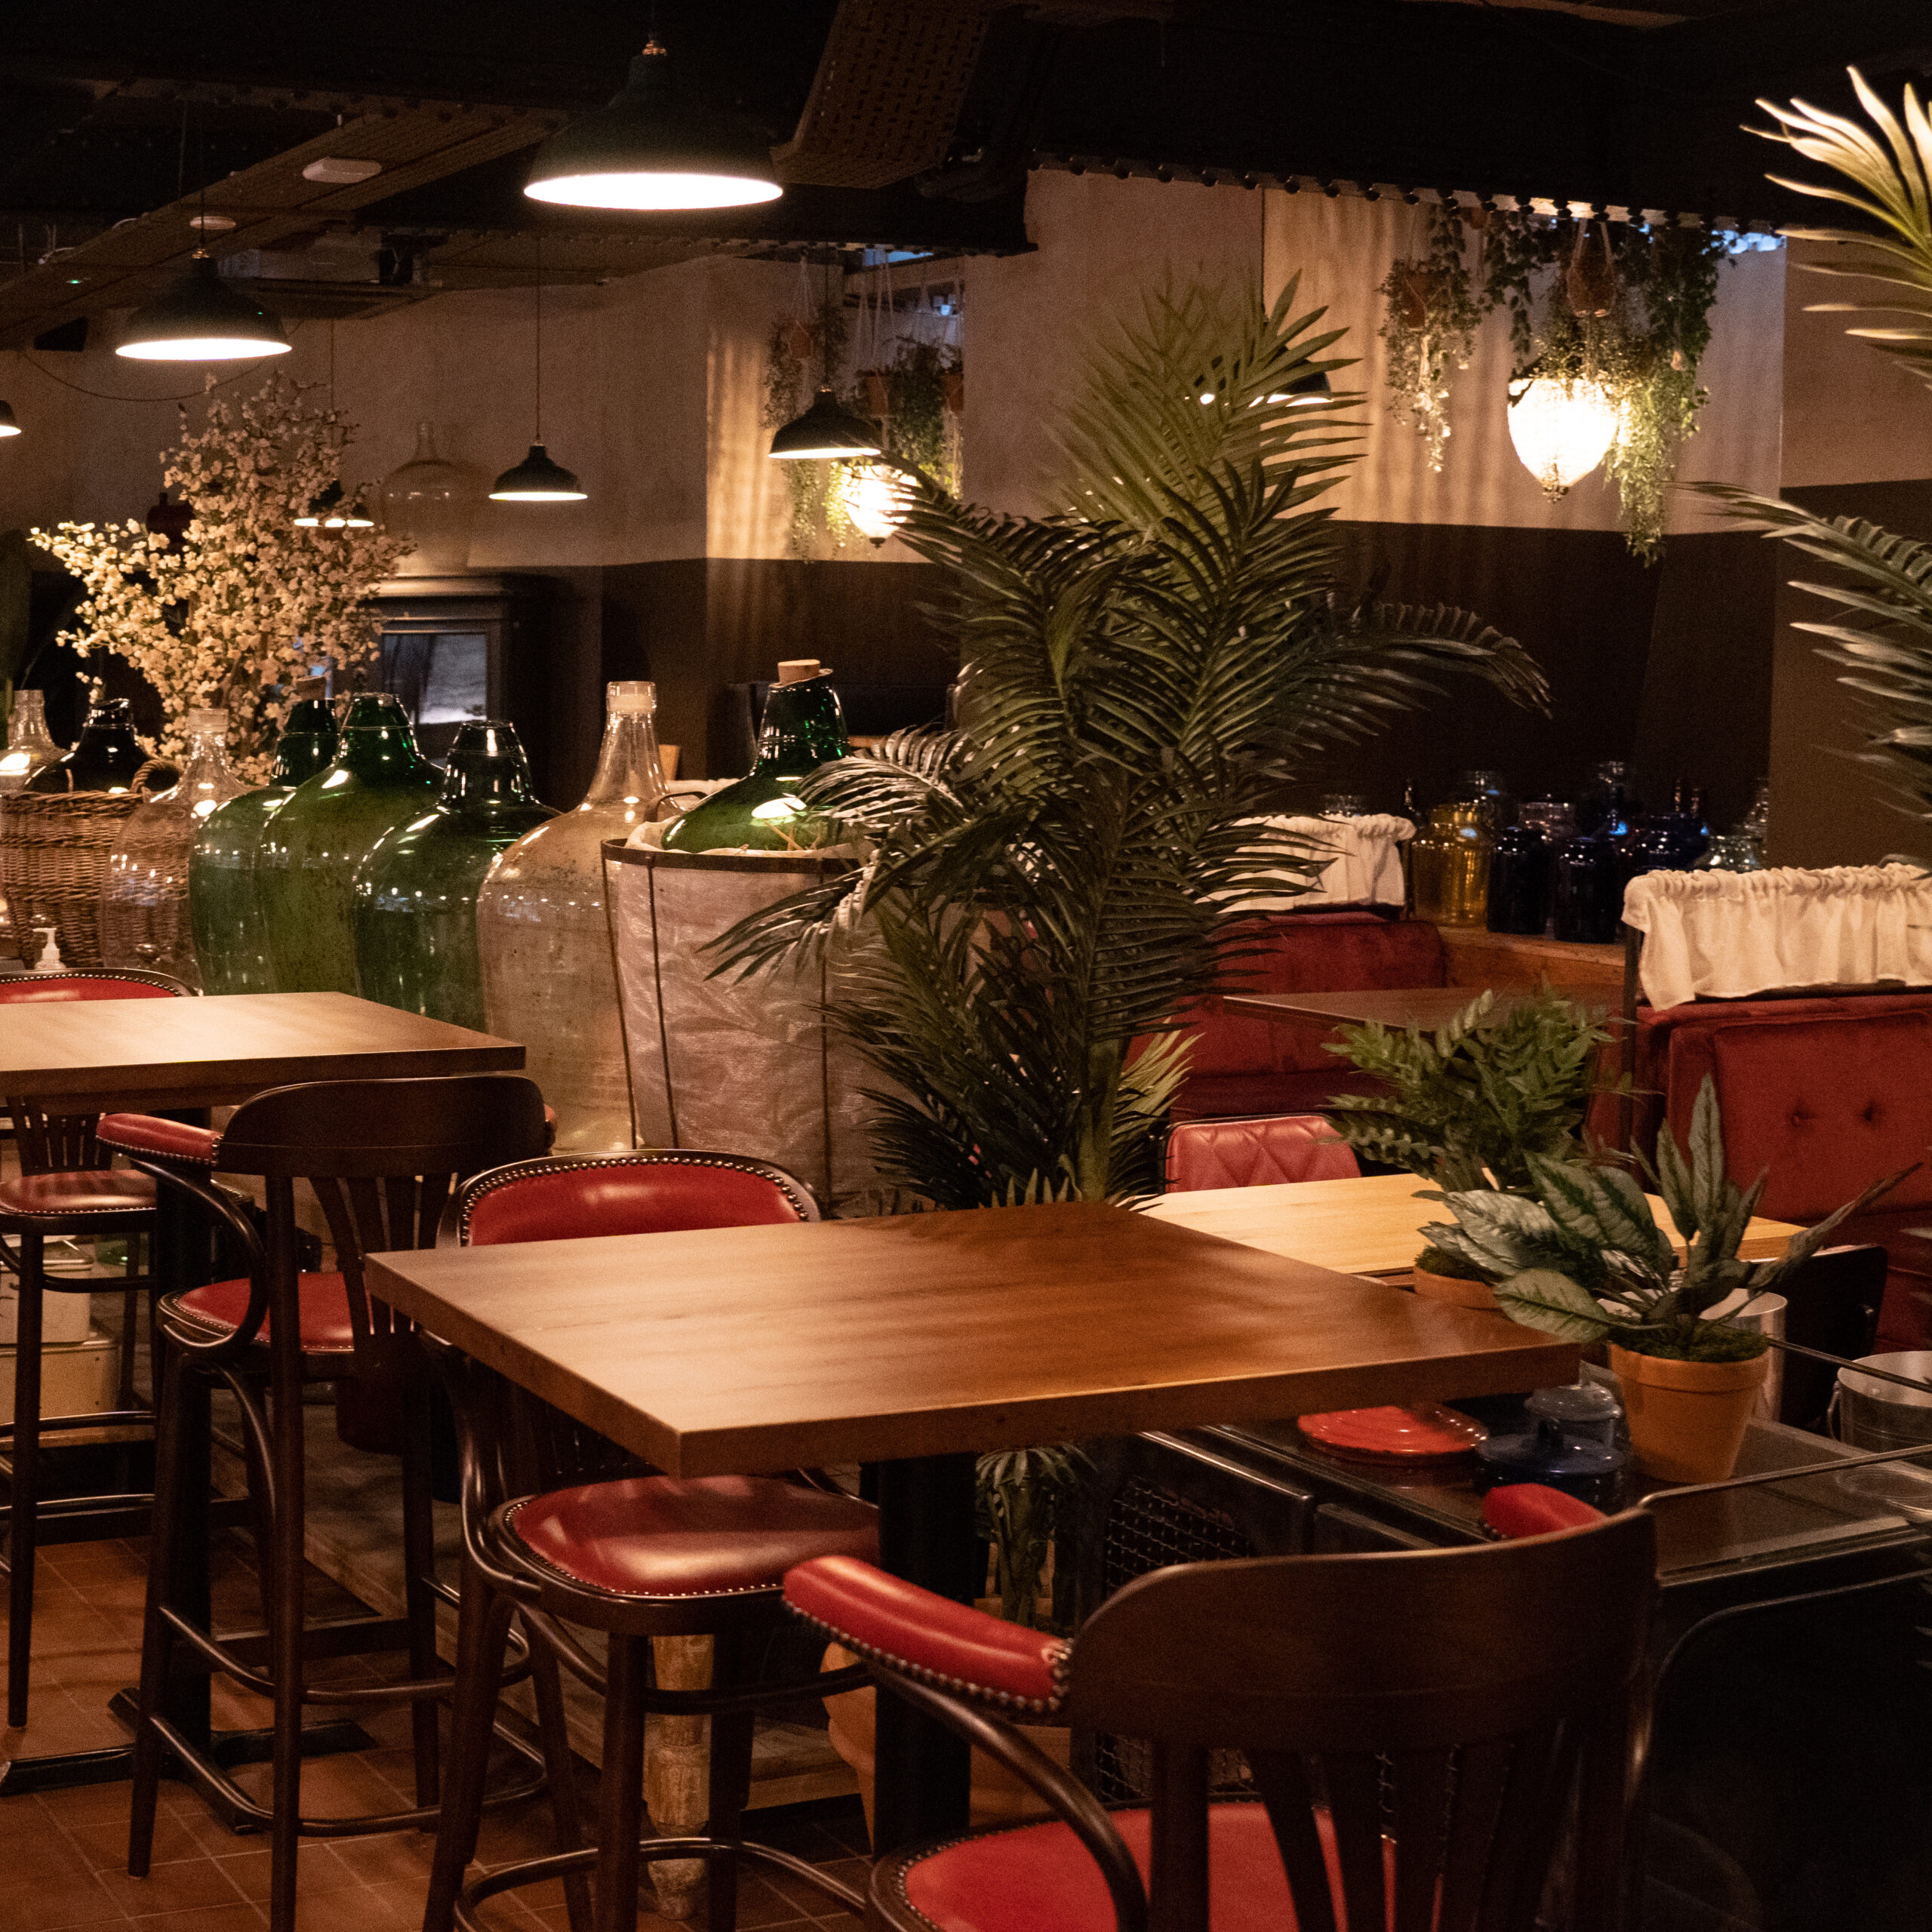 Habas Restaurant and Bar, Manchester